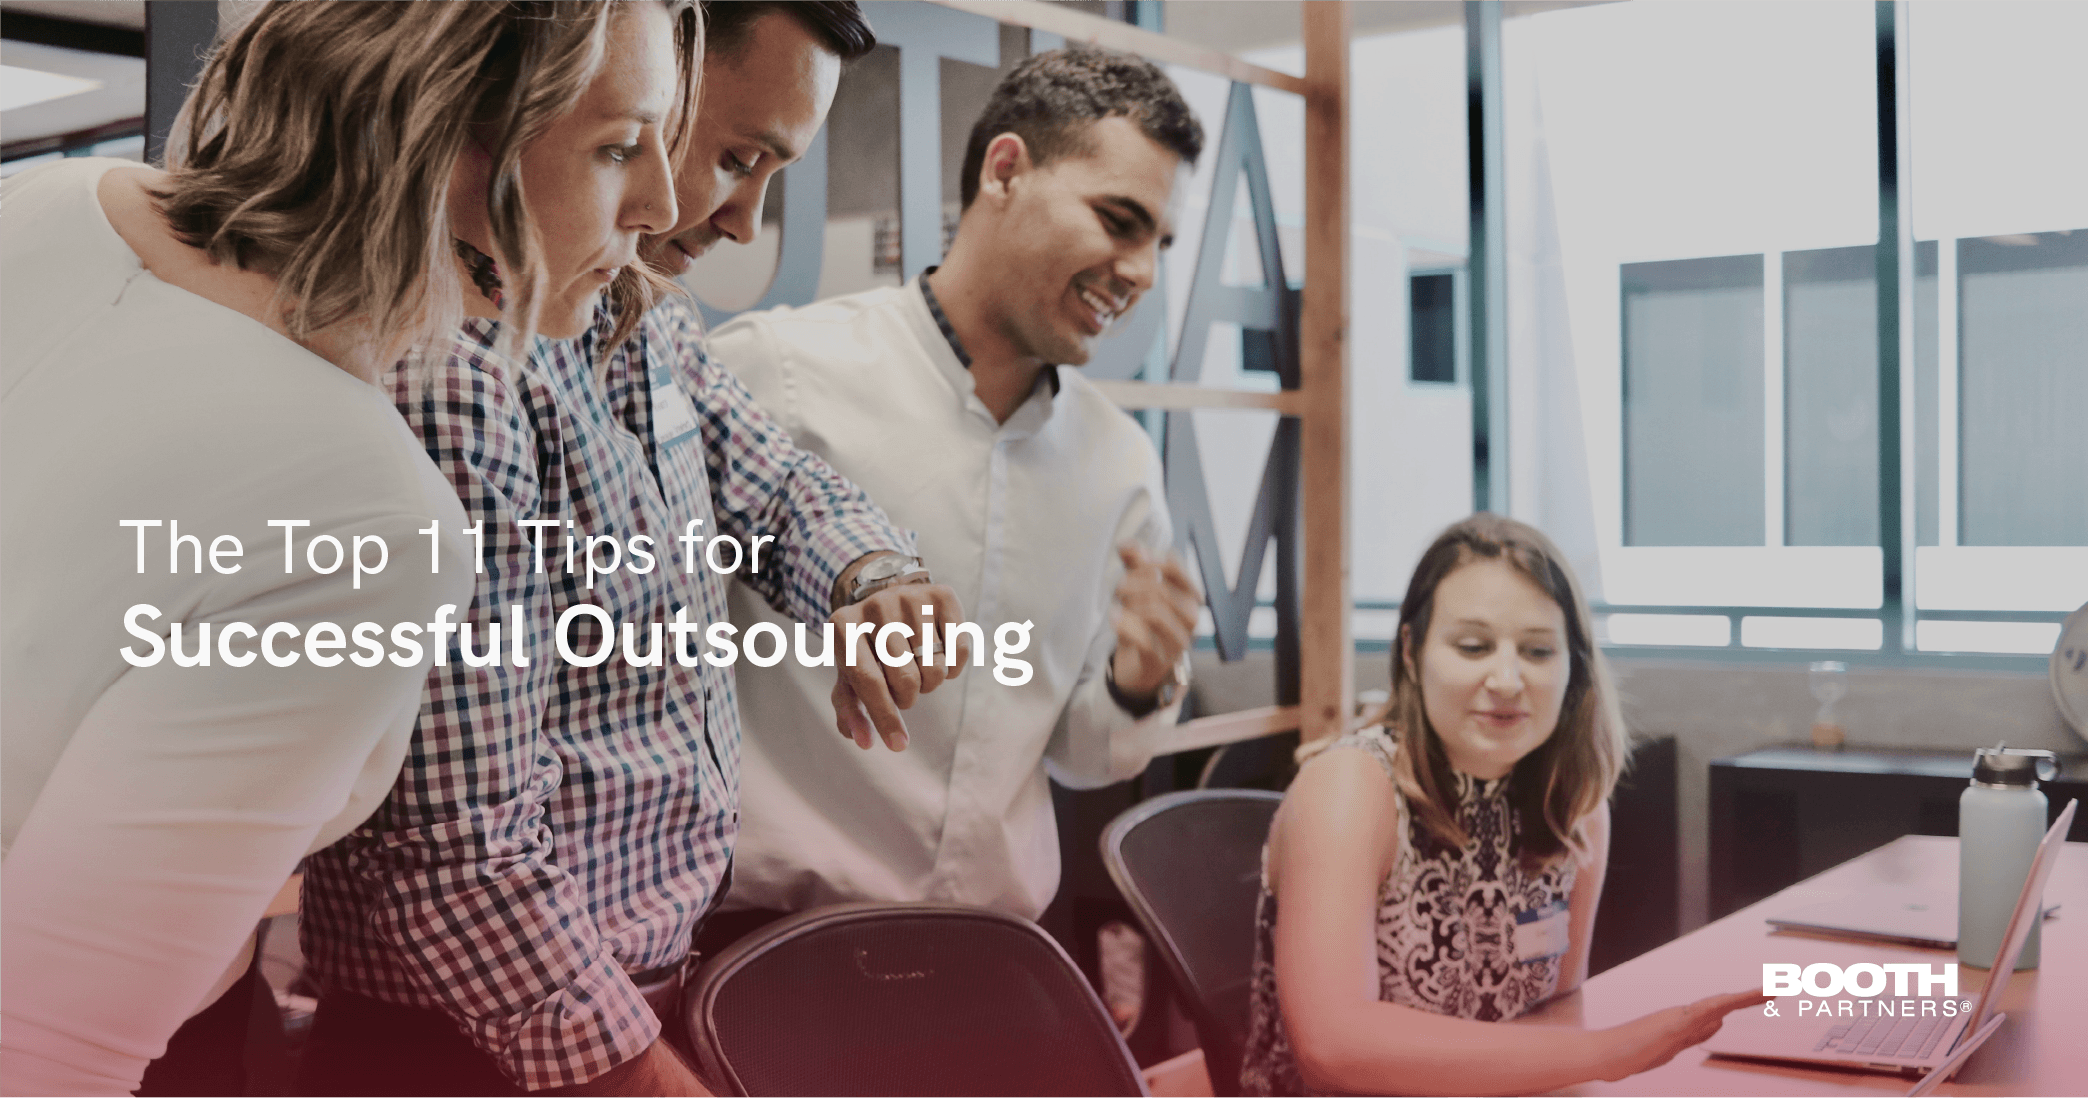 Top 11 Tips for Successful Outsourcing